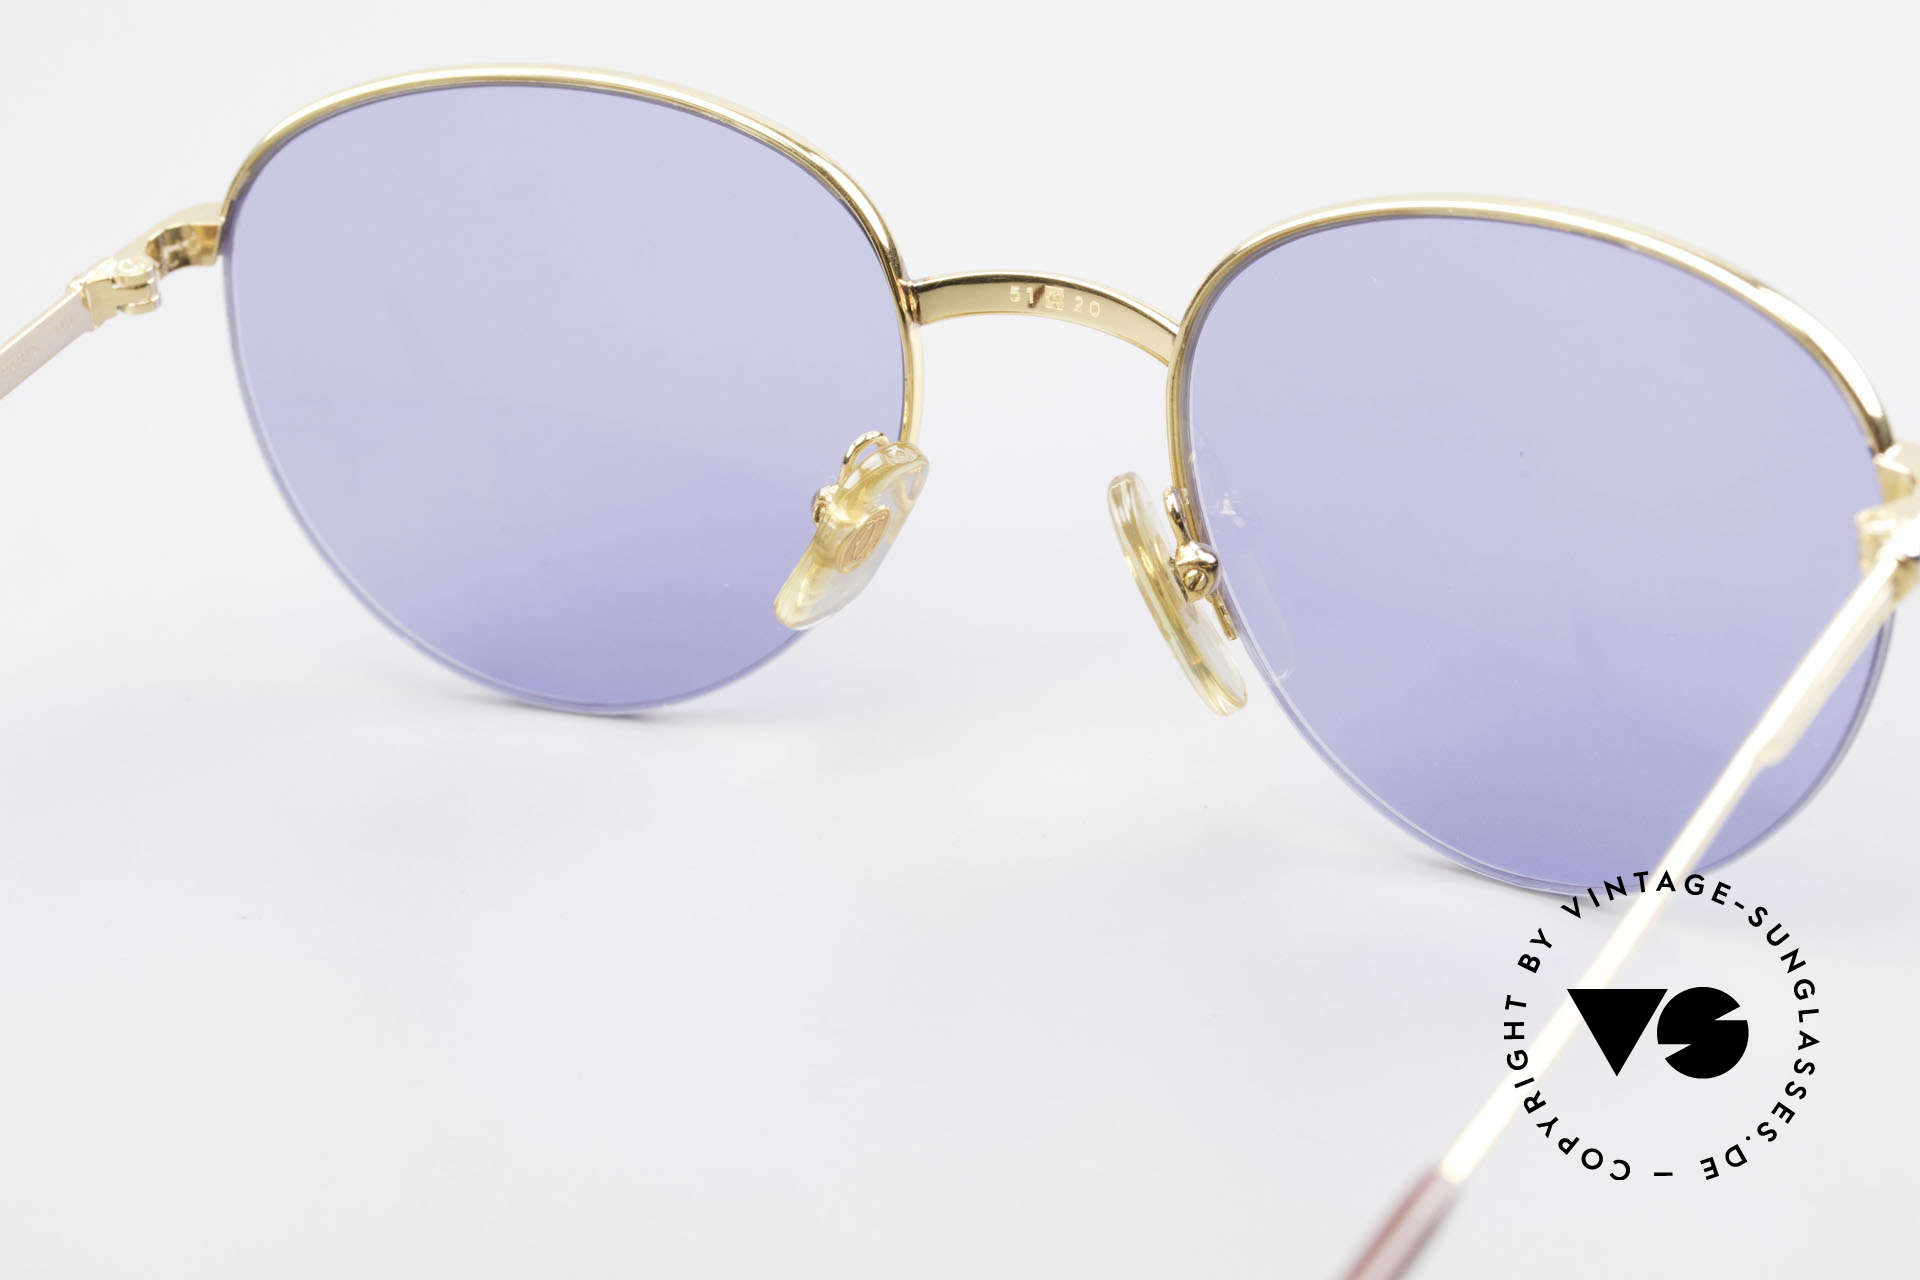 Cartier Colisee Round Luxury Sunglasses 90's, 2. hand but mint condition (new lenses + Cartier box), Made for Men and Women